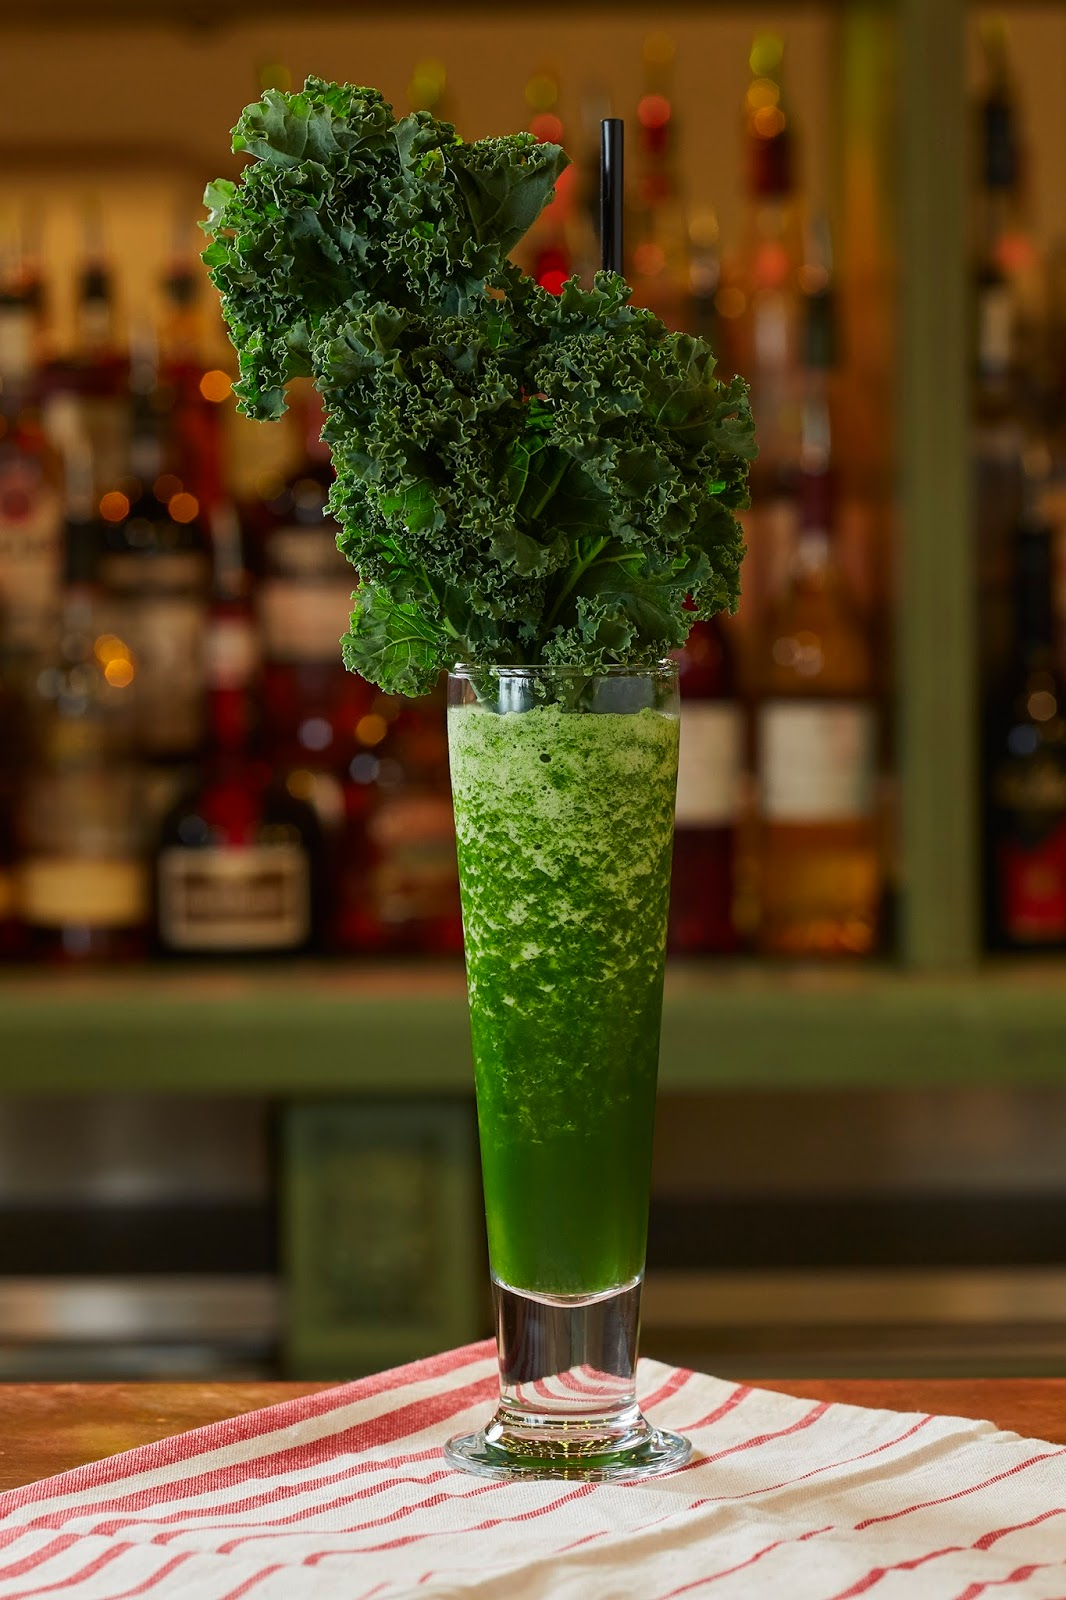 – Kale, apple juice, sugar syrup and lime juice blended together as a smoothie.